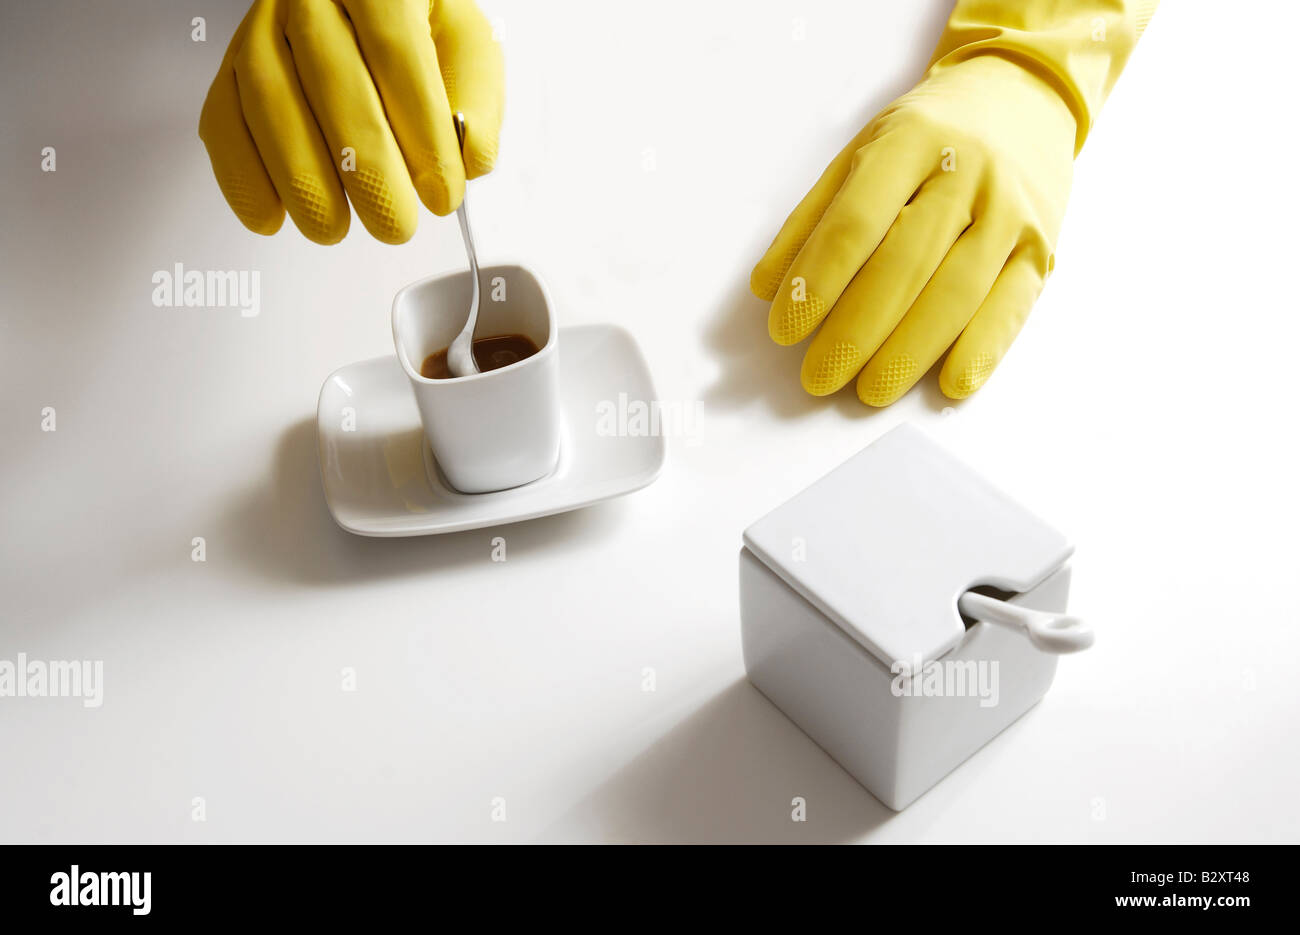 household cleanliness, coffee break - Stock Image